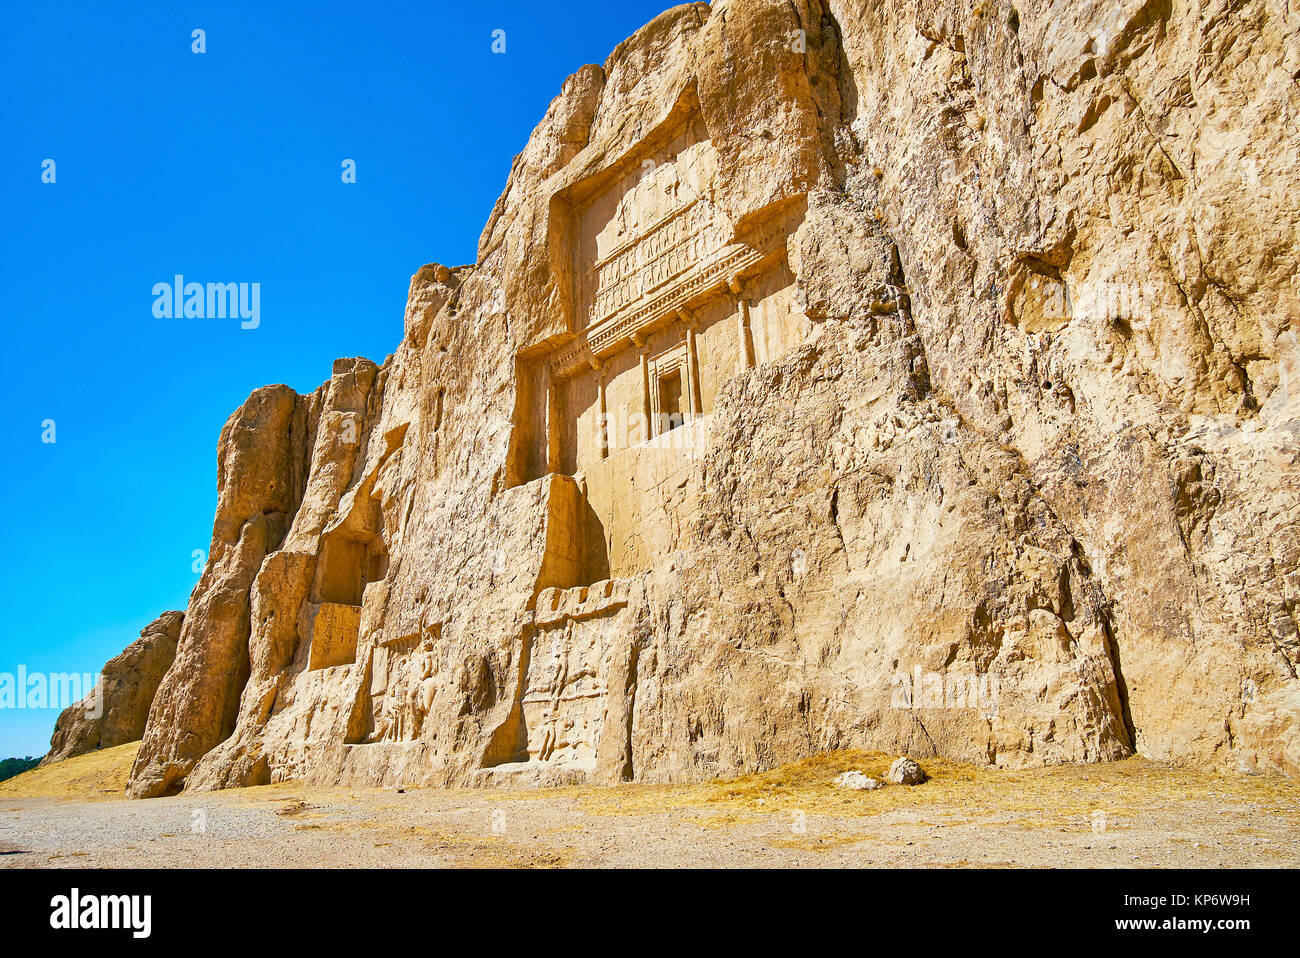 Hossein Mount in Naqsh-e Rustam Necropolis with ancient mausoleums and reliefs, preserved since ancient times, Iran. - Stock Image